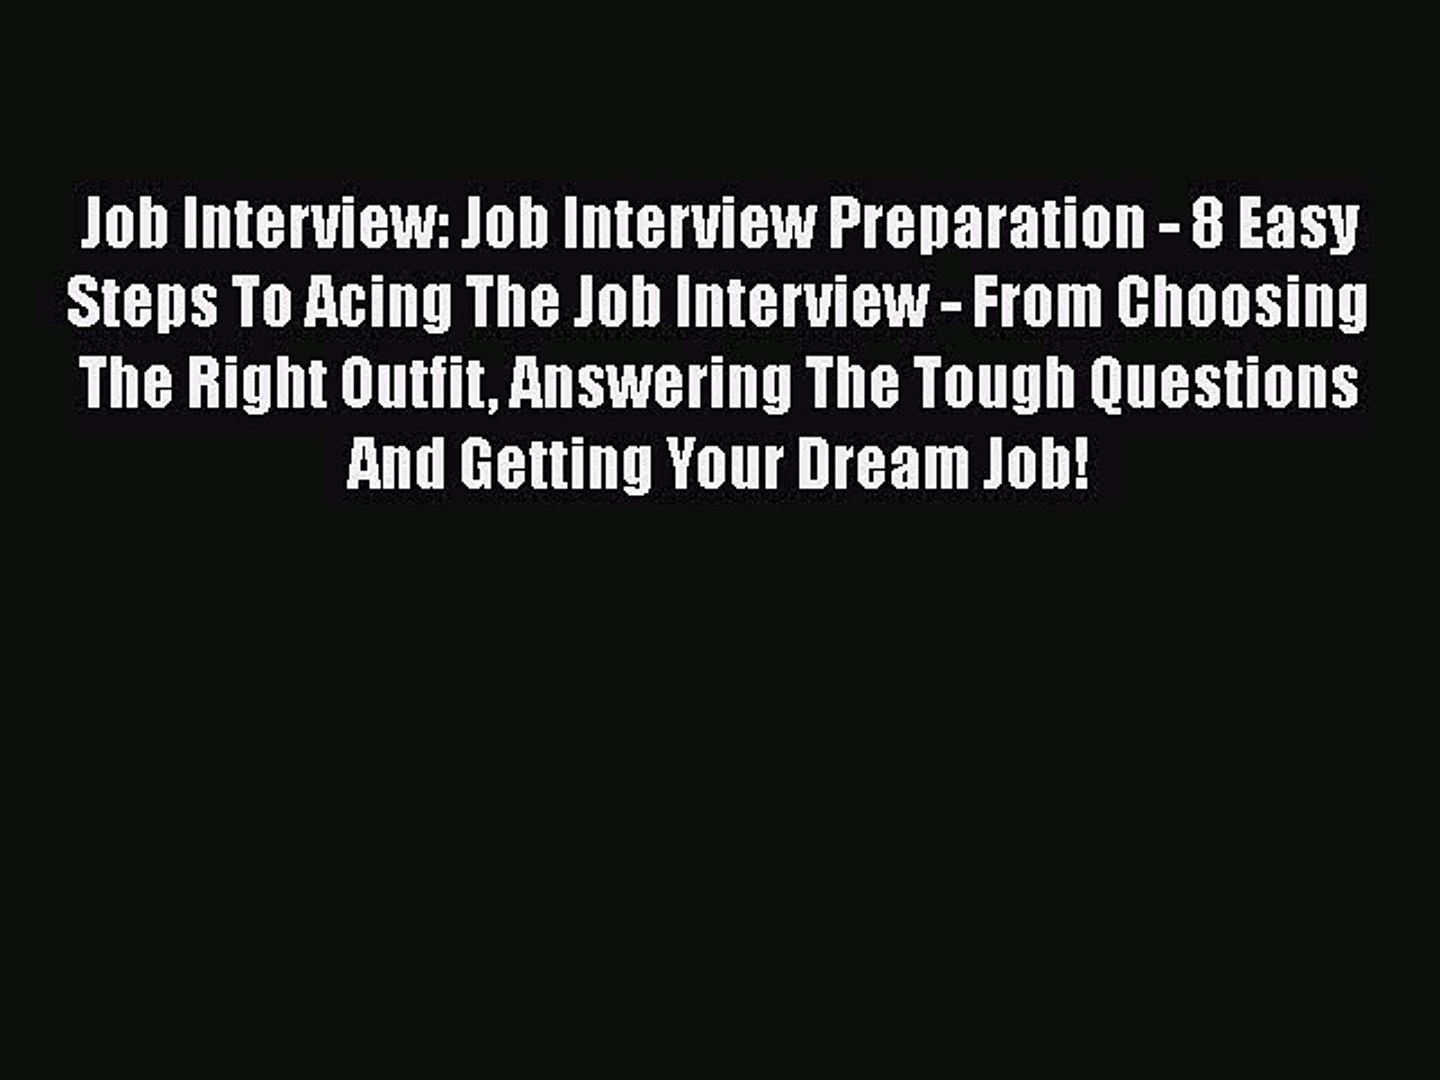 PDF Download Job Interview: Job Interview Preparation - 8 Easy Steps To Acing The Job Interview